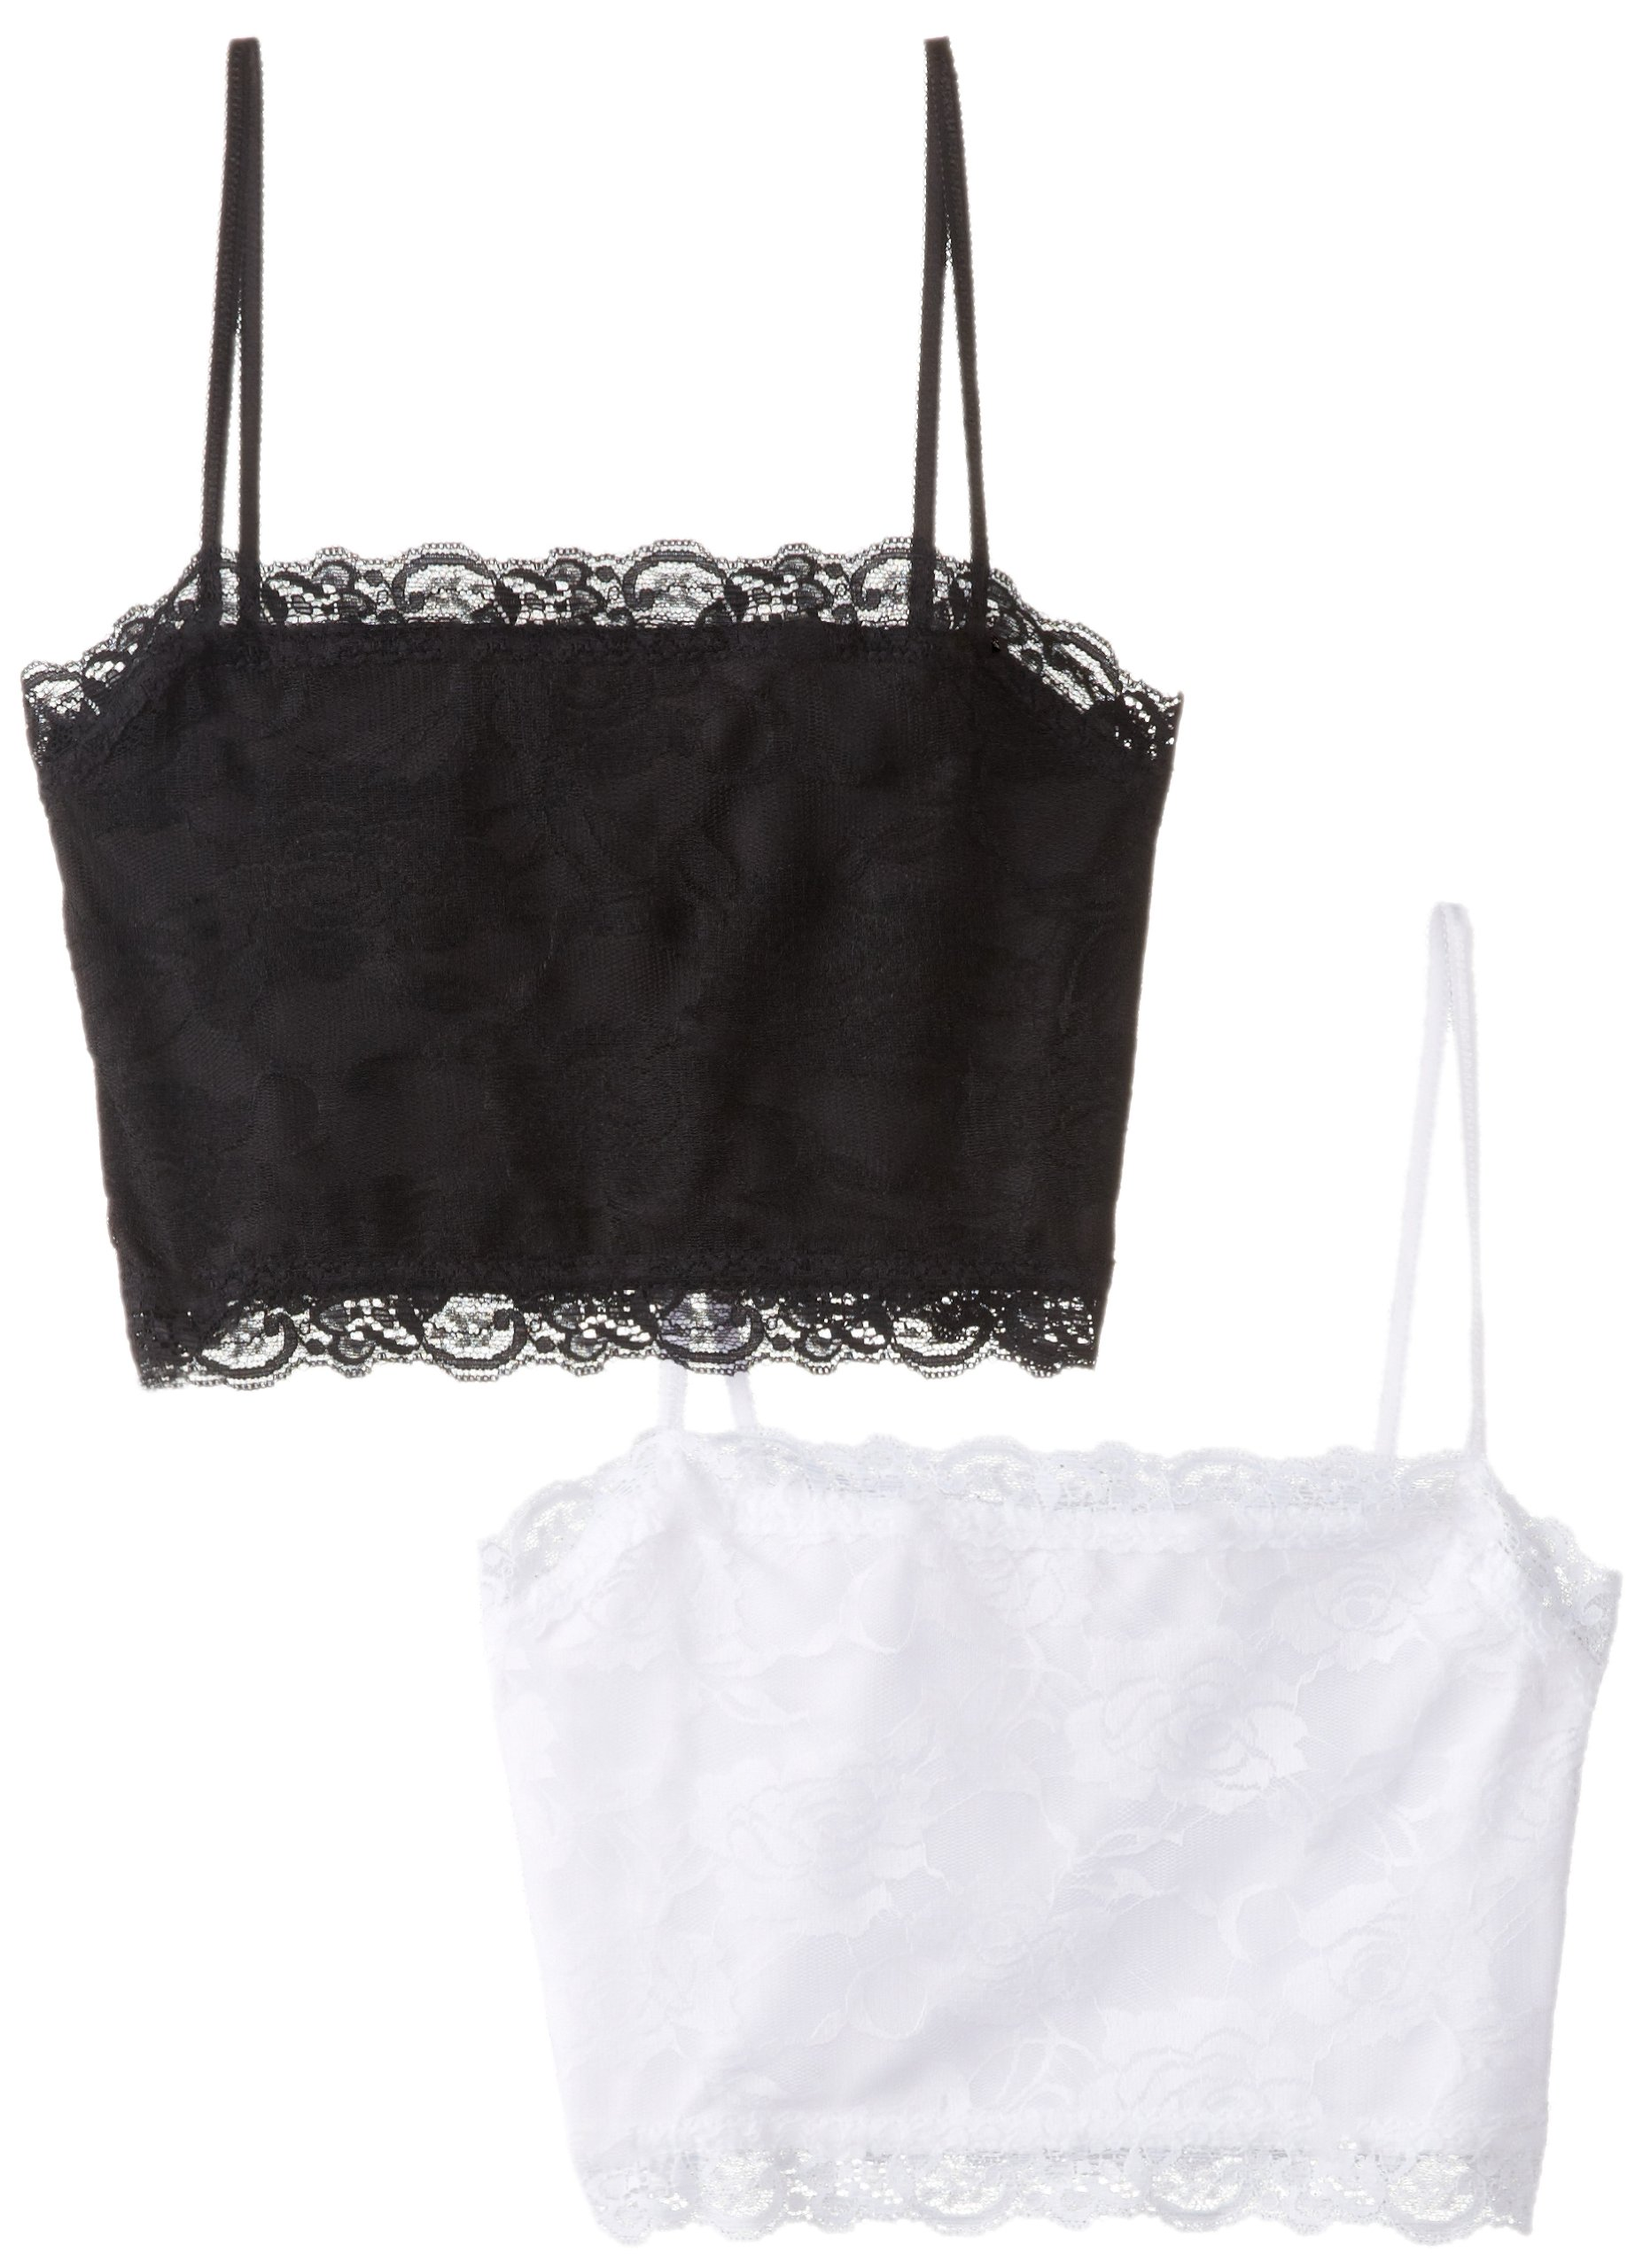 PURE STYLE Girlfriends Camiflage 2-Pack Lined Stretch Lace Half Camisole, Black/White, Large